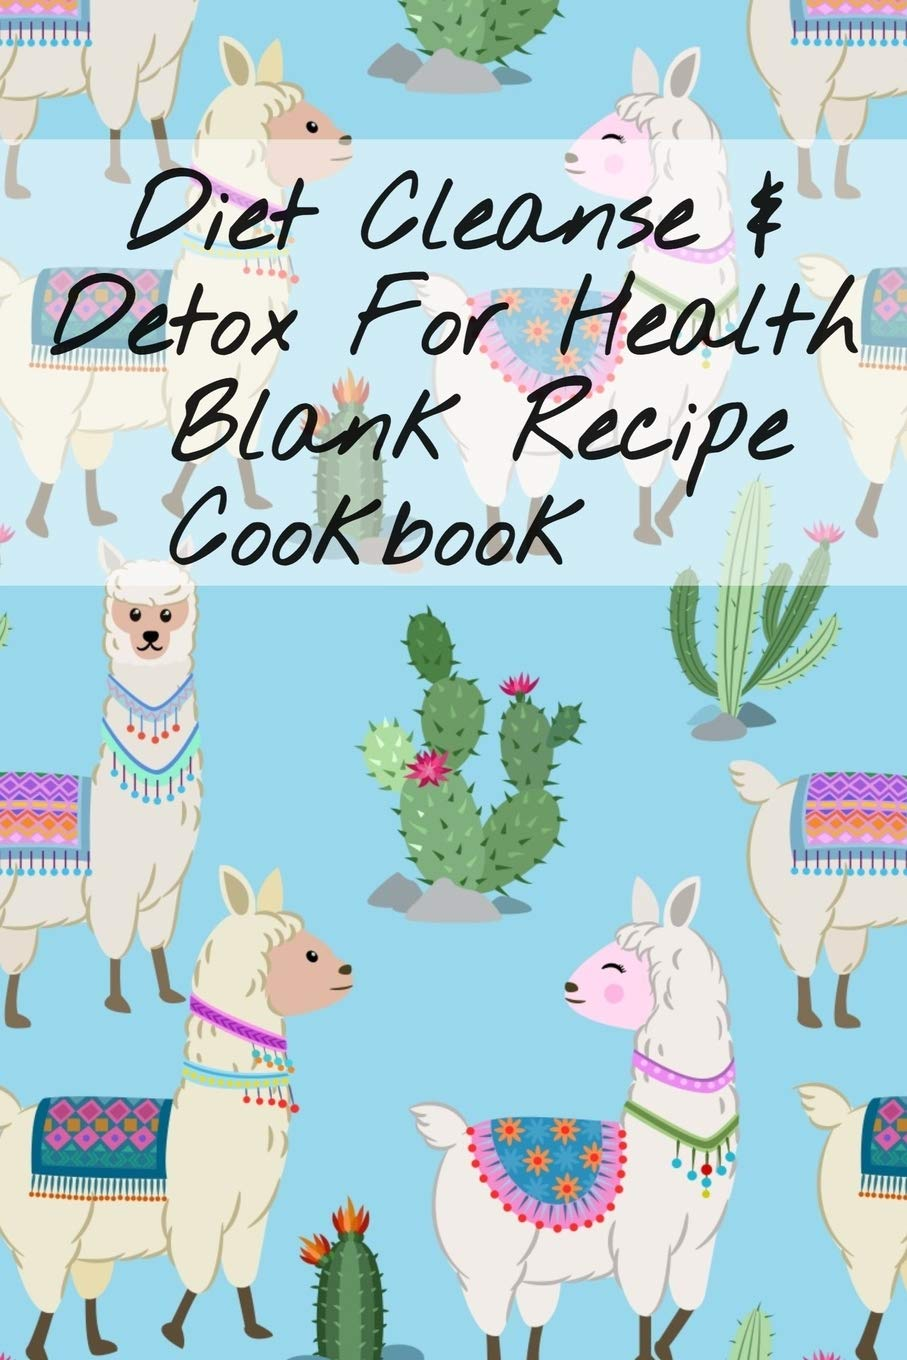 Diet Cleanse Detox For Health Blank Recipe Cookbook Blank Recipe Leafy Green Liquid Food Plan Recipe Sheets For Detoxing Meals Blank Cookbook Drink Ingredients Calories Notes Instru